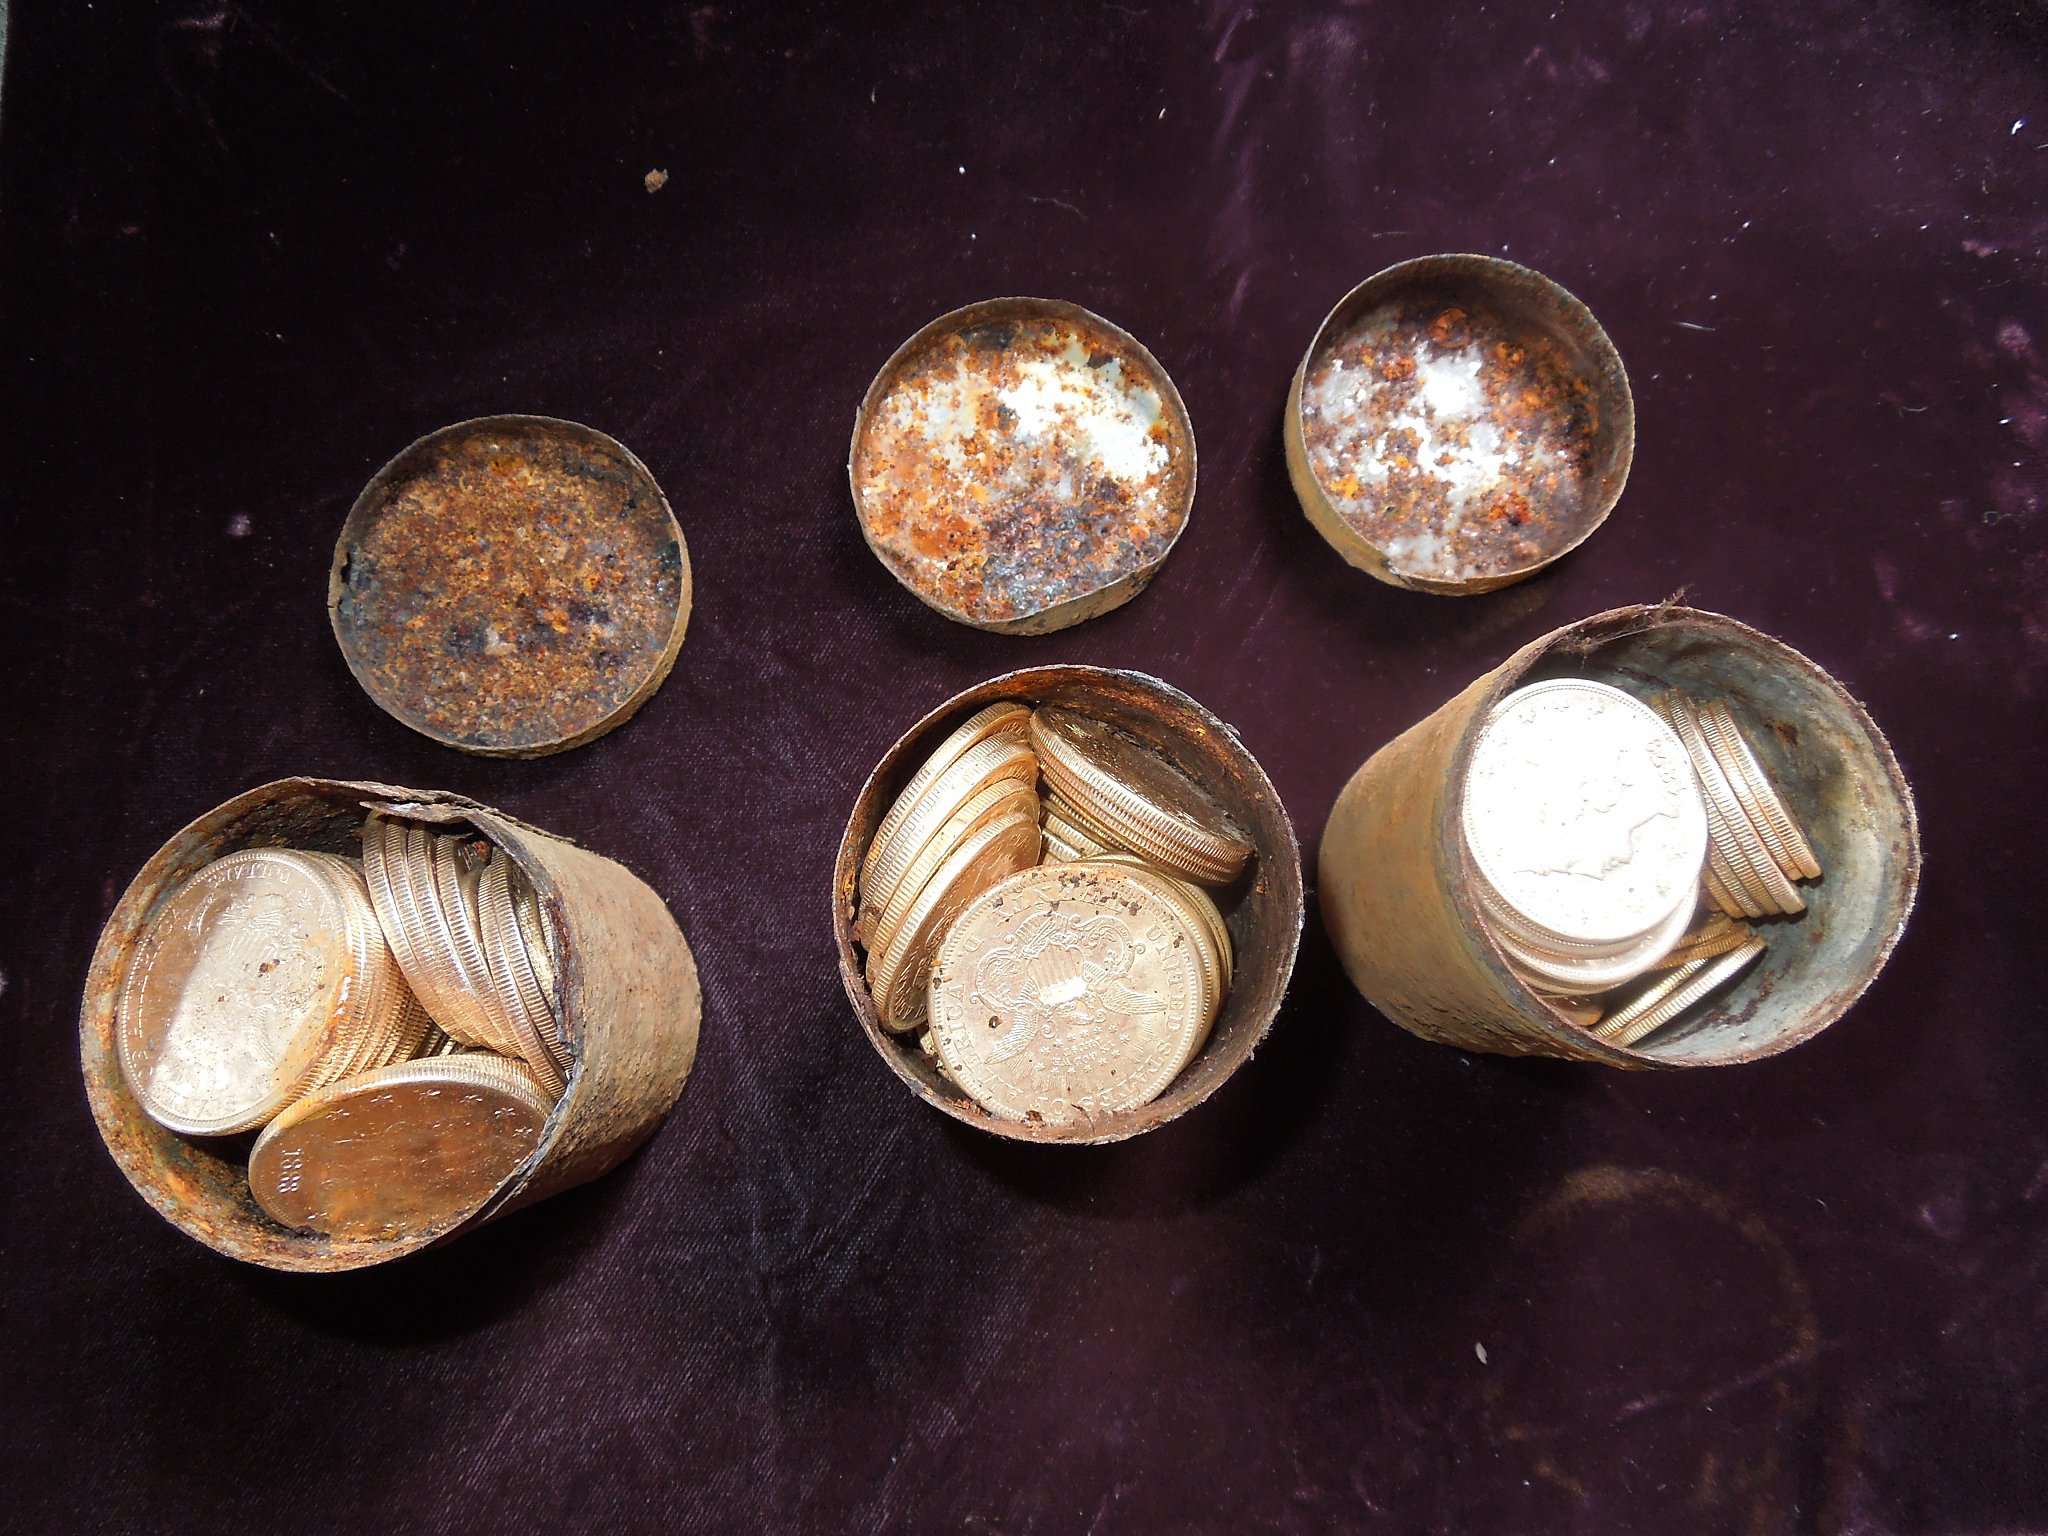 California Gold Coins Found In Backyard gold country couple discover $10 million in buried coins - sfgate